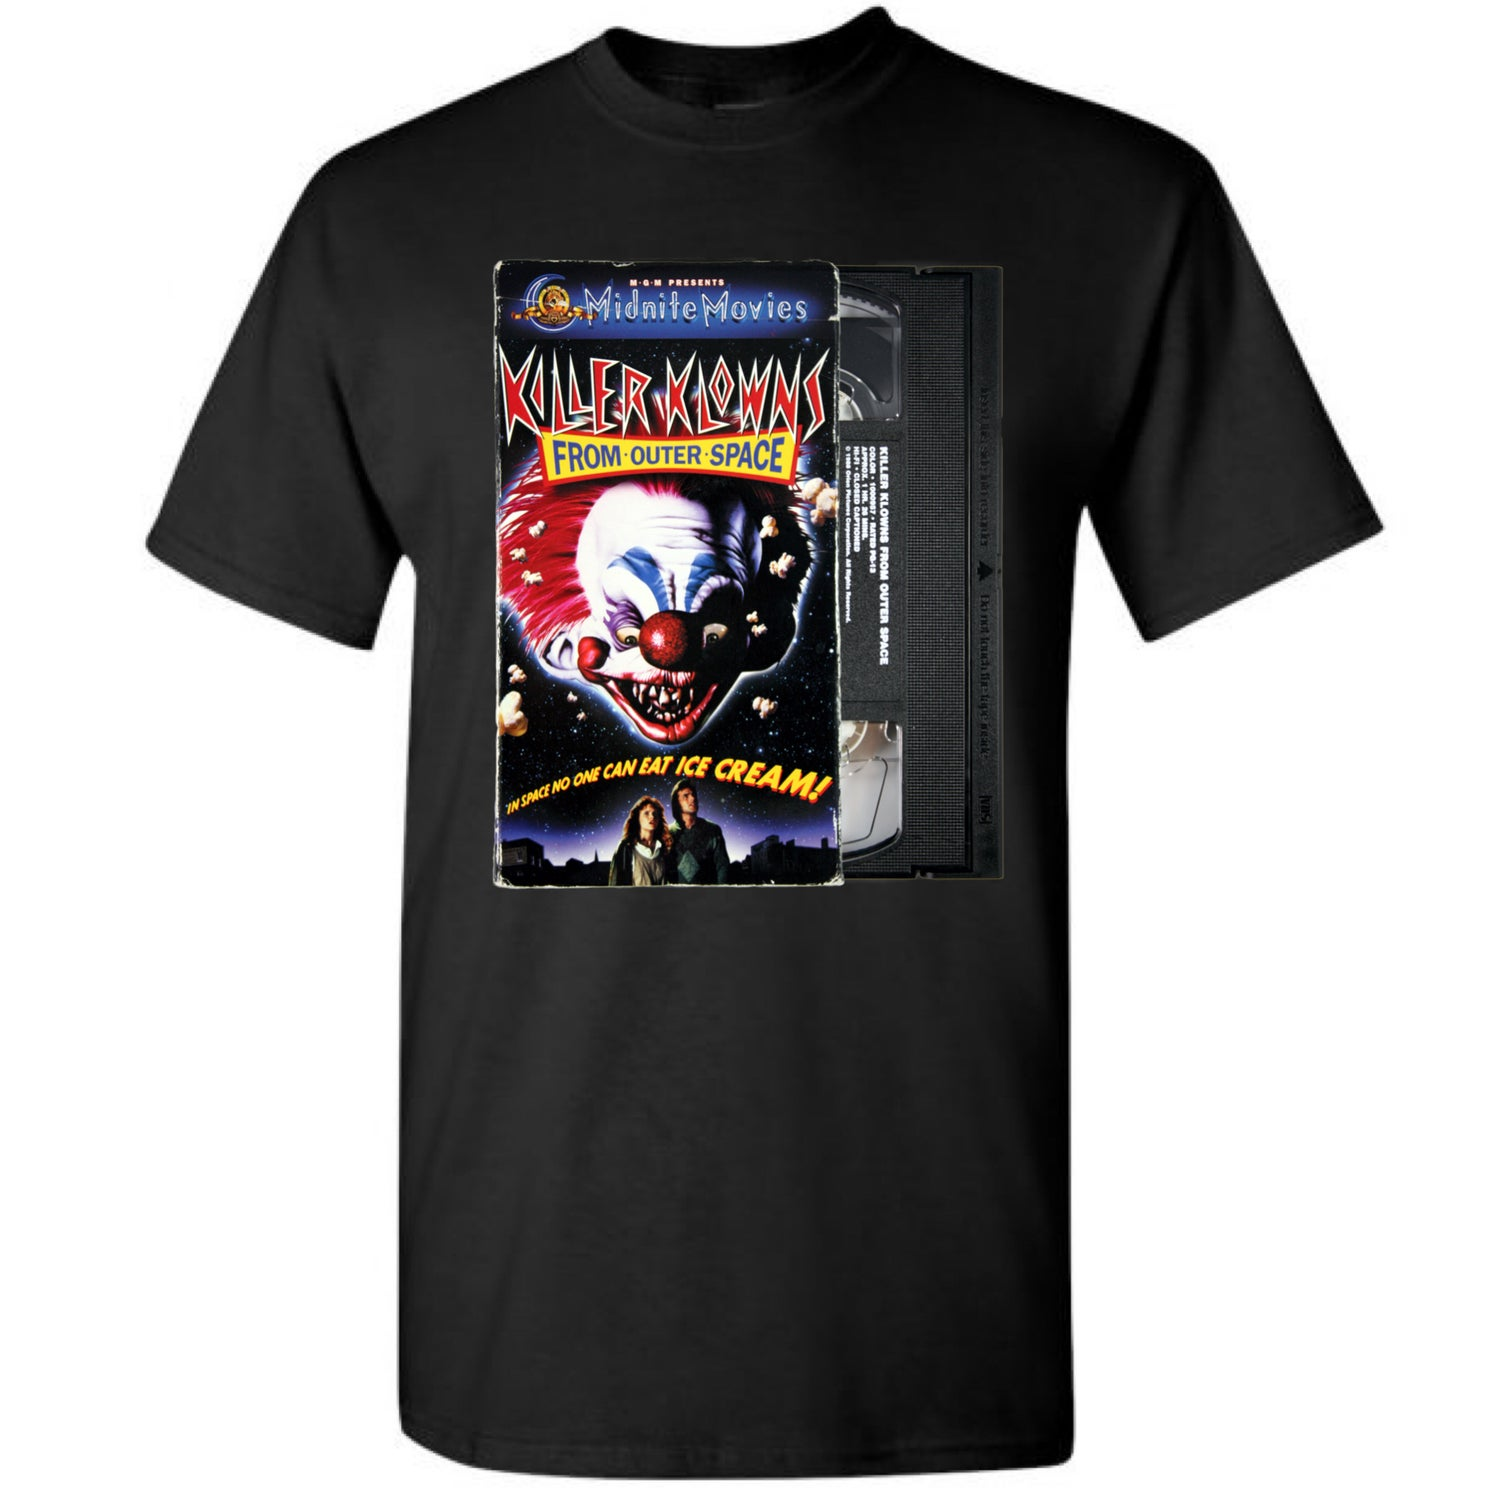 Image of VHS Series Killer Klowns From Outer Space (T-Shirt)